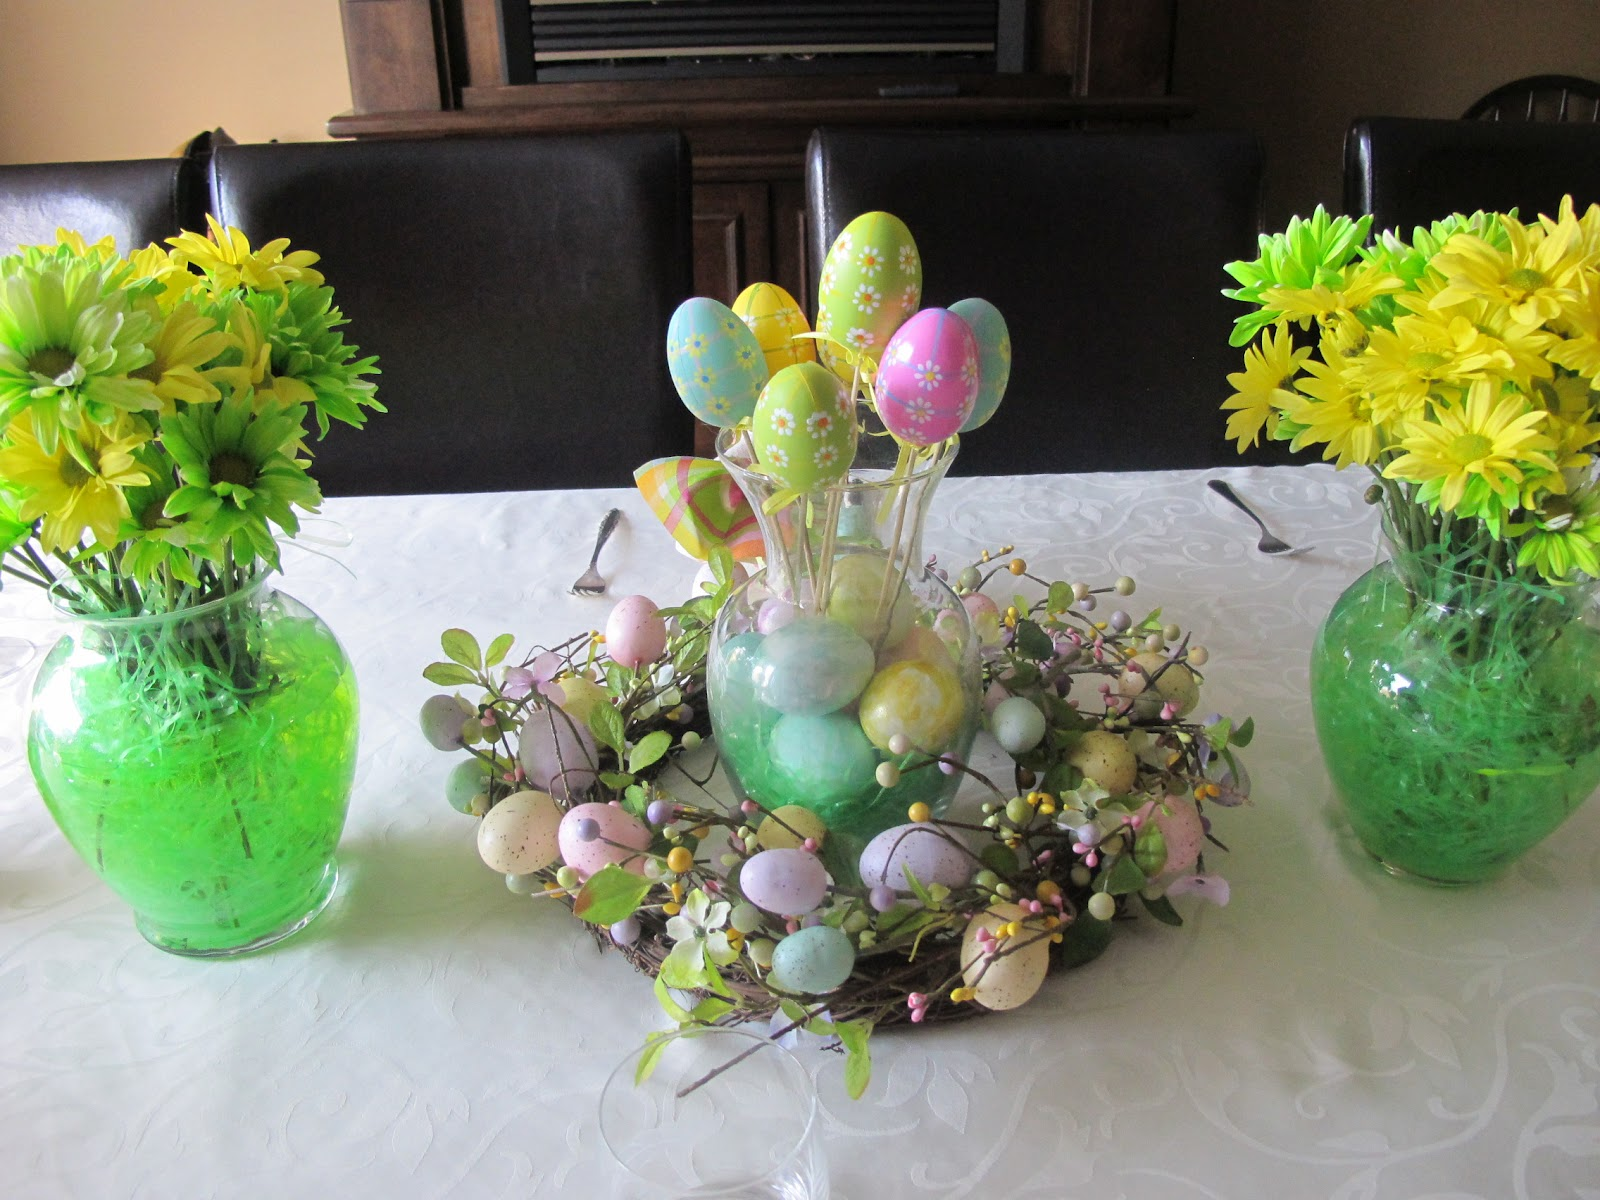 Mia cucina april 2012 - Table easter decorations ...